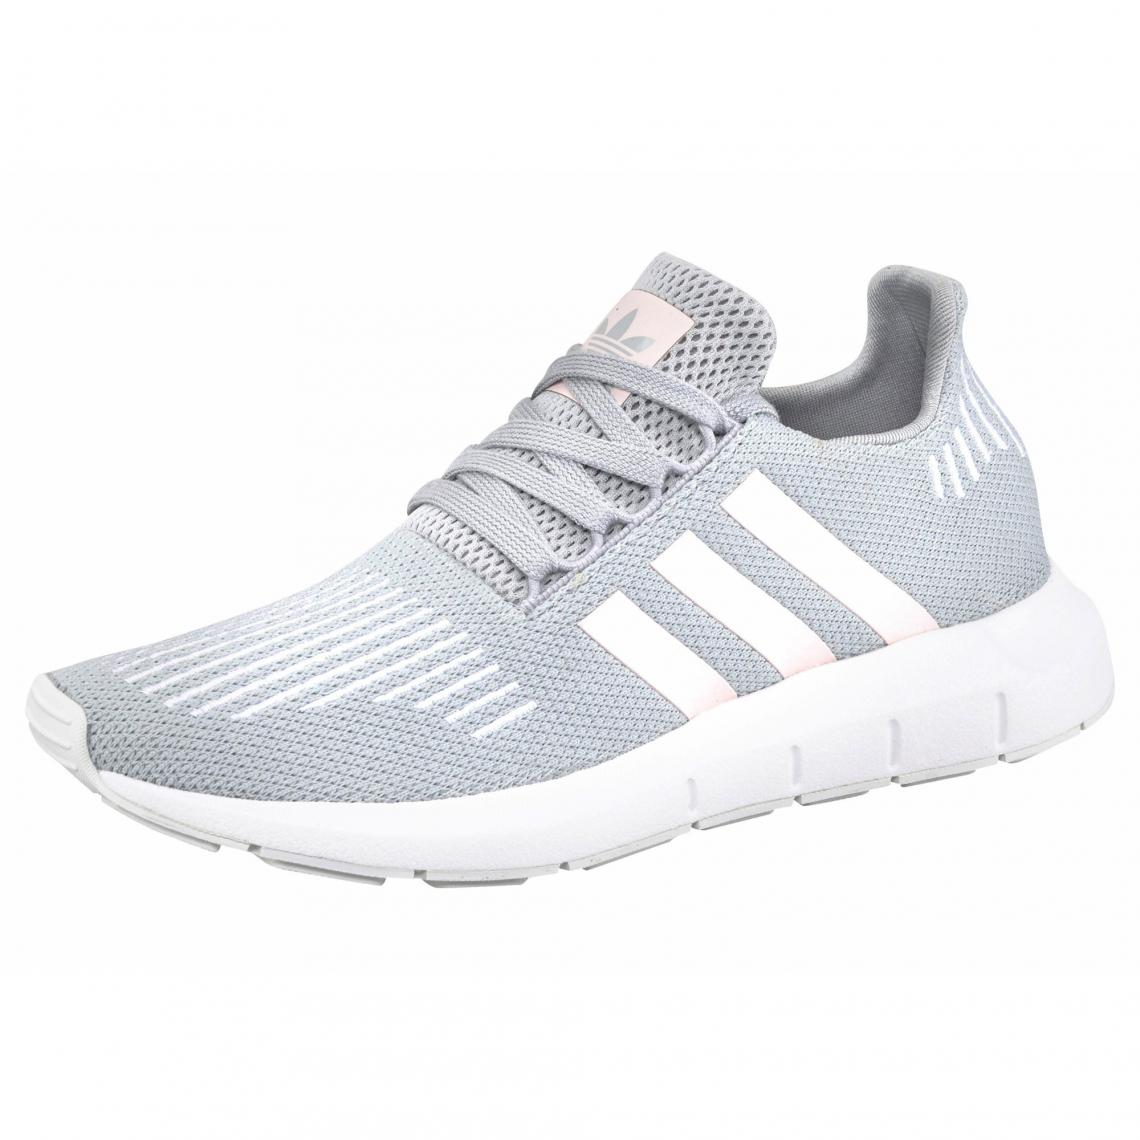 adidas Originals Swift Run chaussures running femme - Gris - Rose Plus de  détails